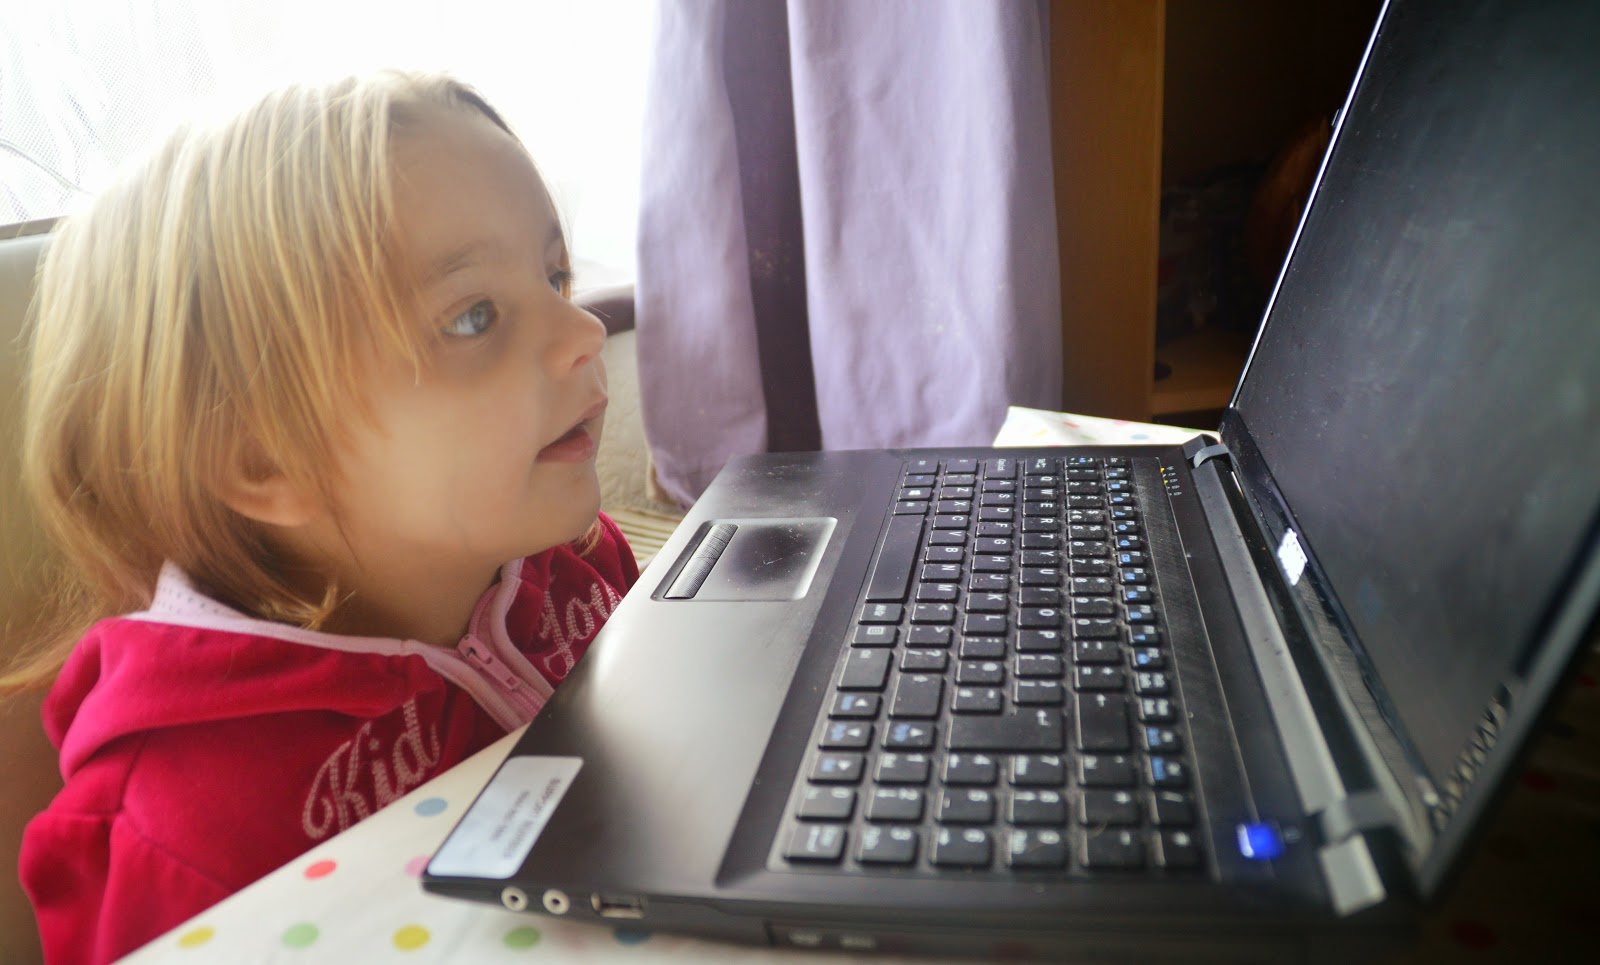 , Parenting Tech Worries- What Are You Most Afraid Of?